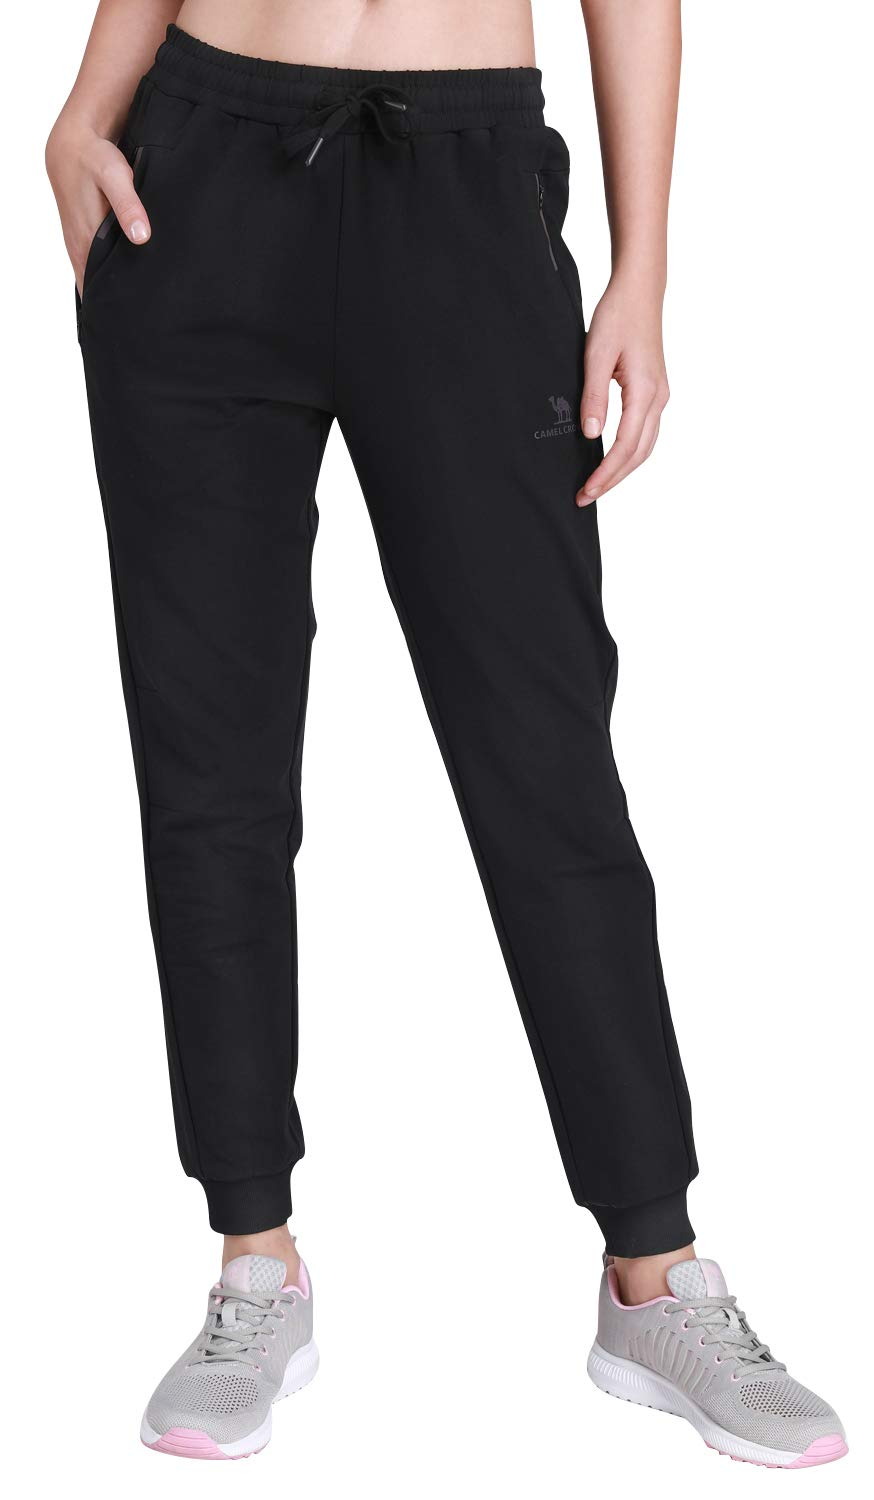 9870aa9f3719 Amazon.com   CAMEL CROWN Women s Jogger Pants with Pockets Soft Drawstring  Sweatpants for Gym Running Jogging Lounging   Sports   Outdoors